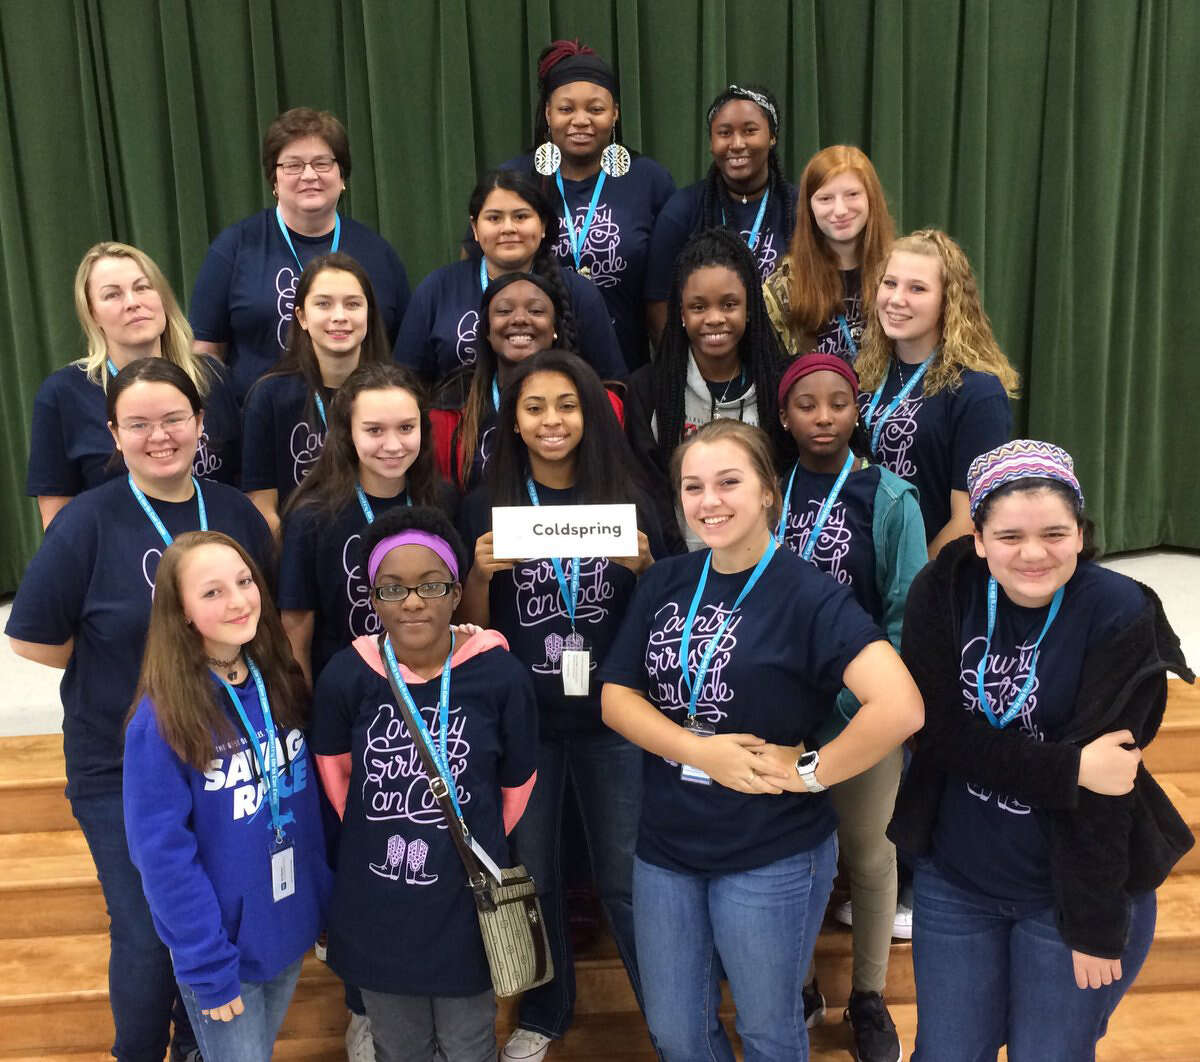 Sixteen students from Coldspring-Oakhurst High School attended the 2nd Annual Country Girls Can Code (CGCC) workshop in Manor, Texas on Jan. 21. Pictured are (top row, left to right) Sponsor Laura Everett, Lourdes Grimaldo, Tikyana Harrison, Deawna Minor and Sydney Watson; (second row) Sponsor Karen Haffner, Jacqueline Richards, KenÂ?'naysha Blanks, Ebony Green and Kayleigh Triggs; (third row) Julian Gunter, Olivia Richards, Rikki Cantu and Tylia McGowen; front row: Kendall Forehand, Charise Lincoln, Sara Coe and Faith Villa.